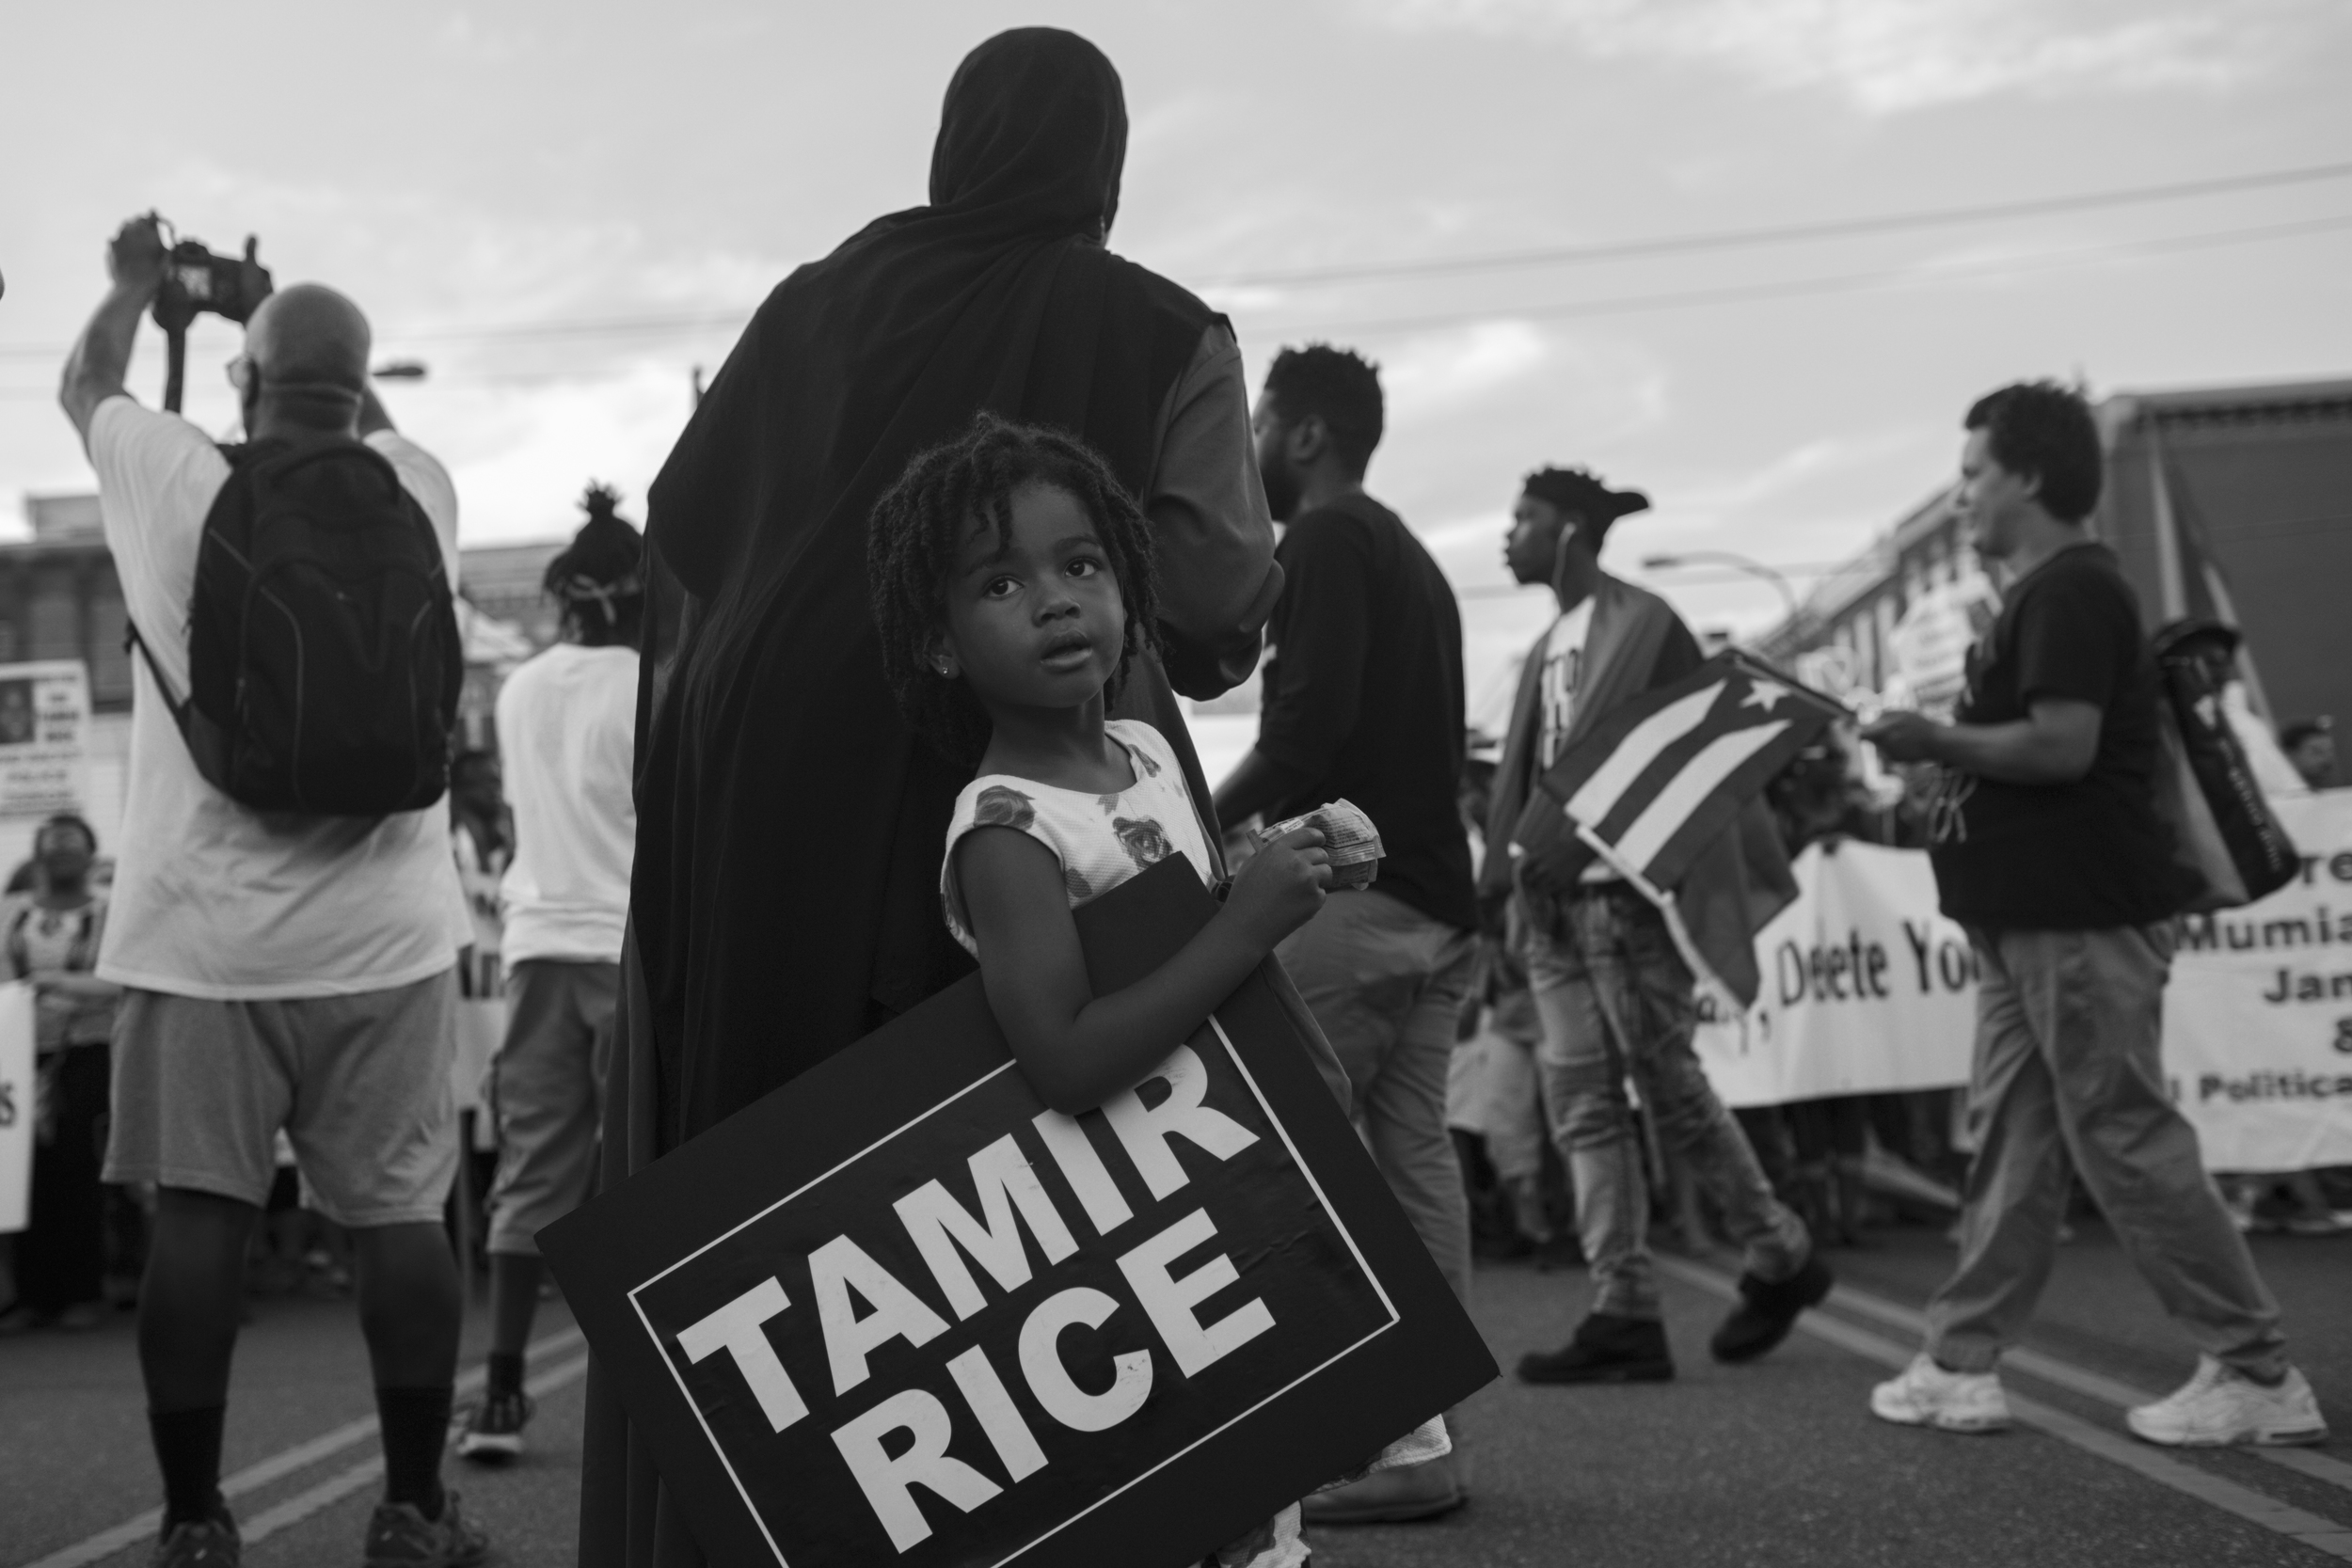 """26 July 2016 - Philadelphia, PA - A girl is holding a sign at the """"Shut Down the DNC!"""" march to remember the shooting of 12yr old Tamir RIce in Cleveland, OH. Photo: Cédric von Niederhäusern"""